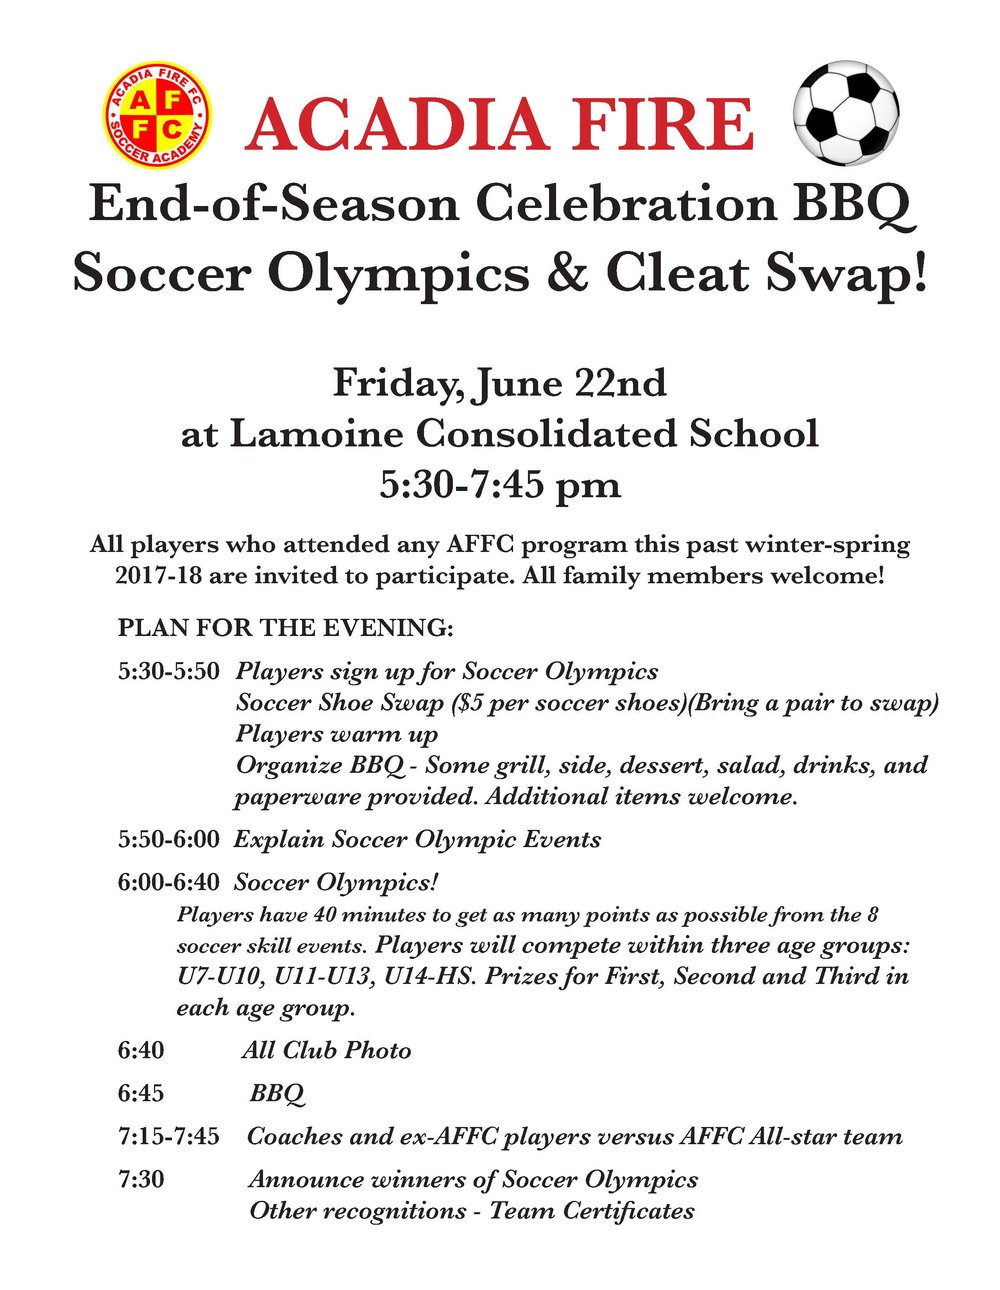 2018 Spring End of Season BBQ Celebration flyer.jpg